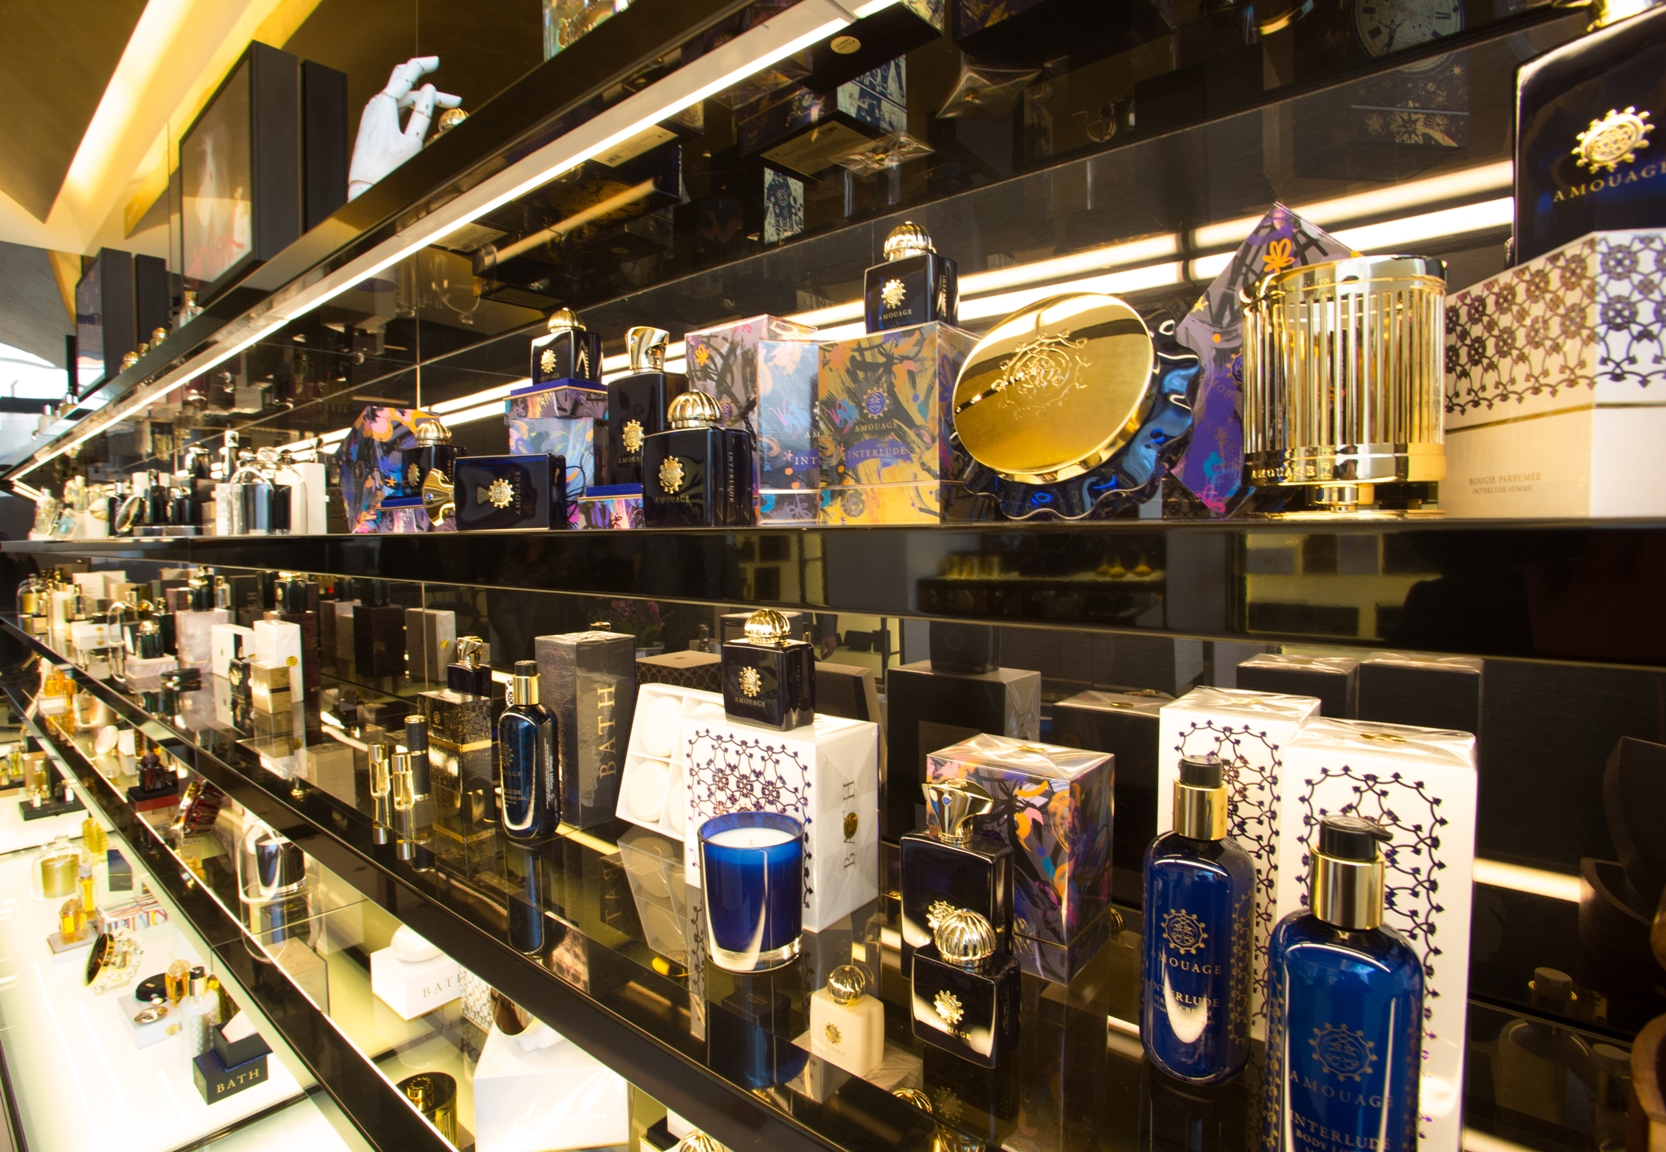 Amouage, 2° flagship store in Europa